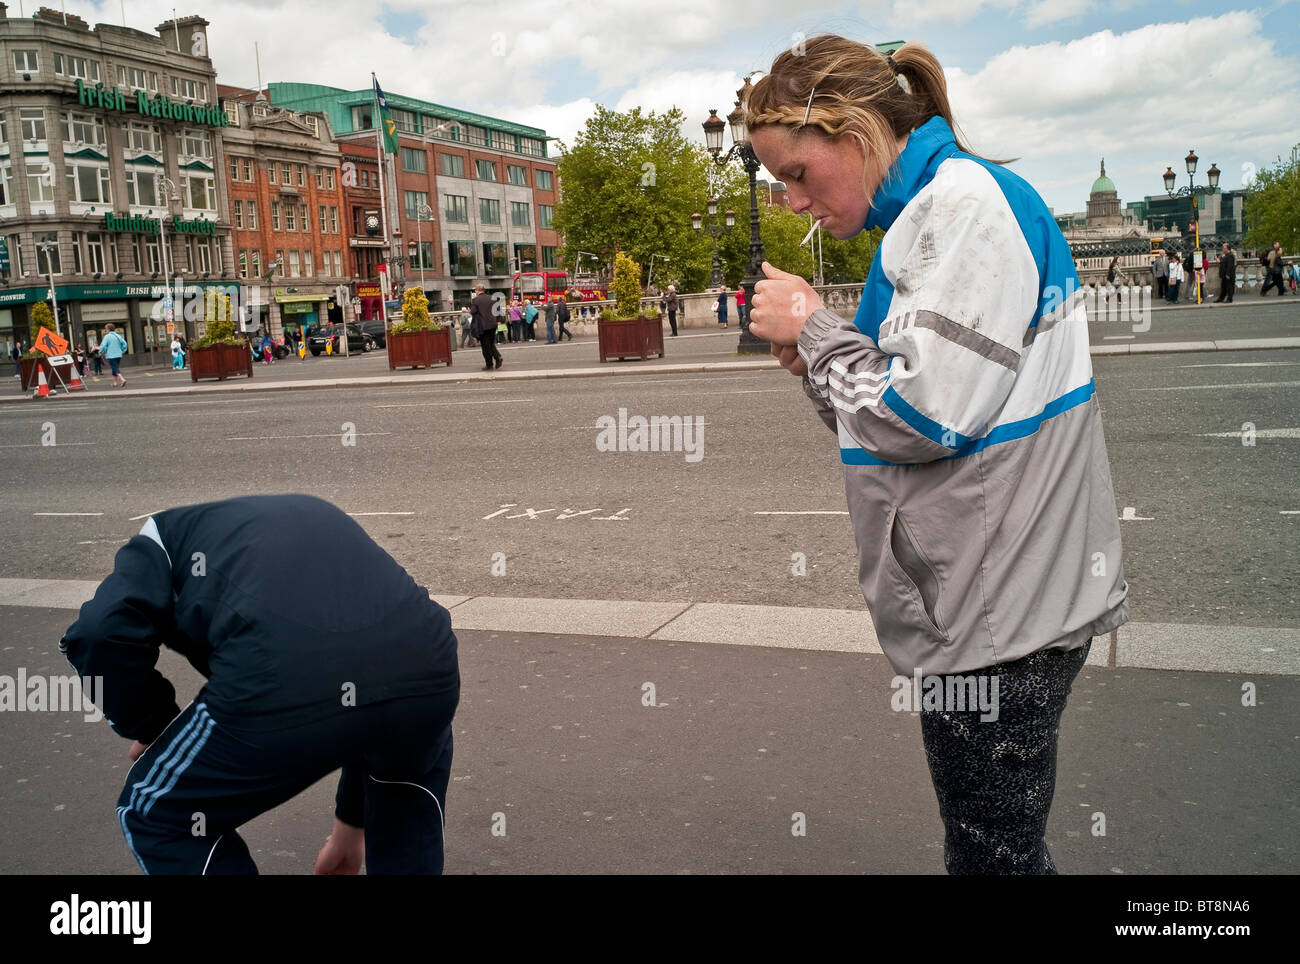 Young woman in Dublin on O'Connell bridge lighting a cigarette. A man bends over. - Stock Image